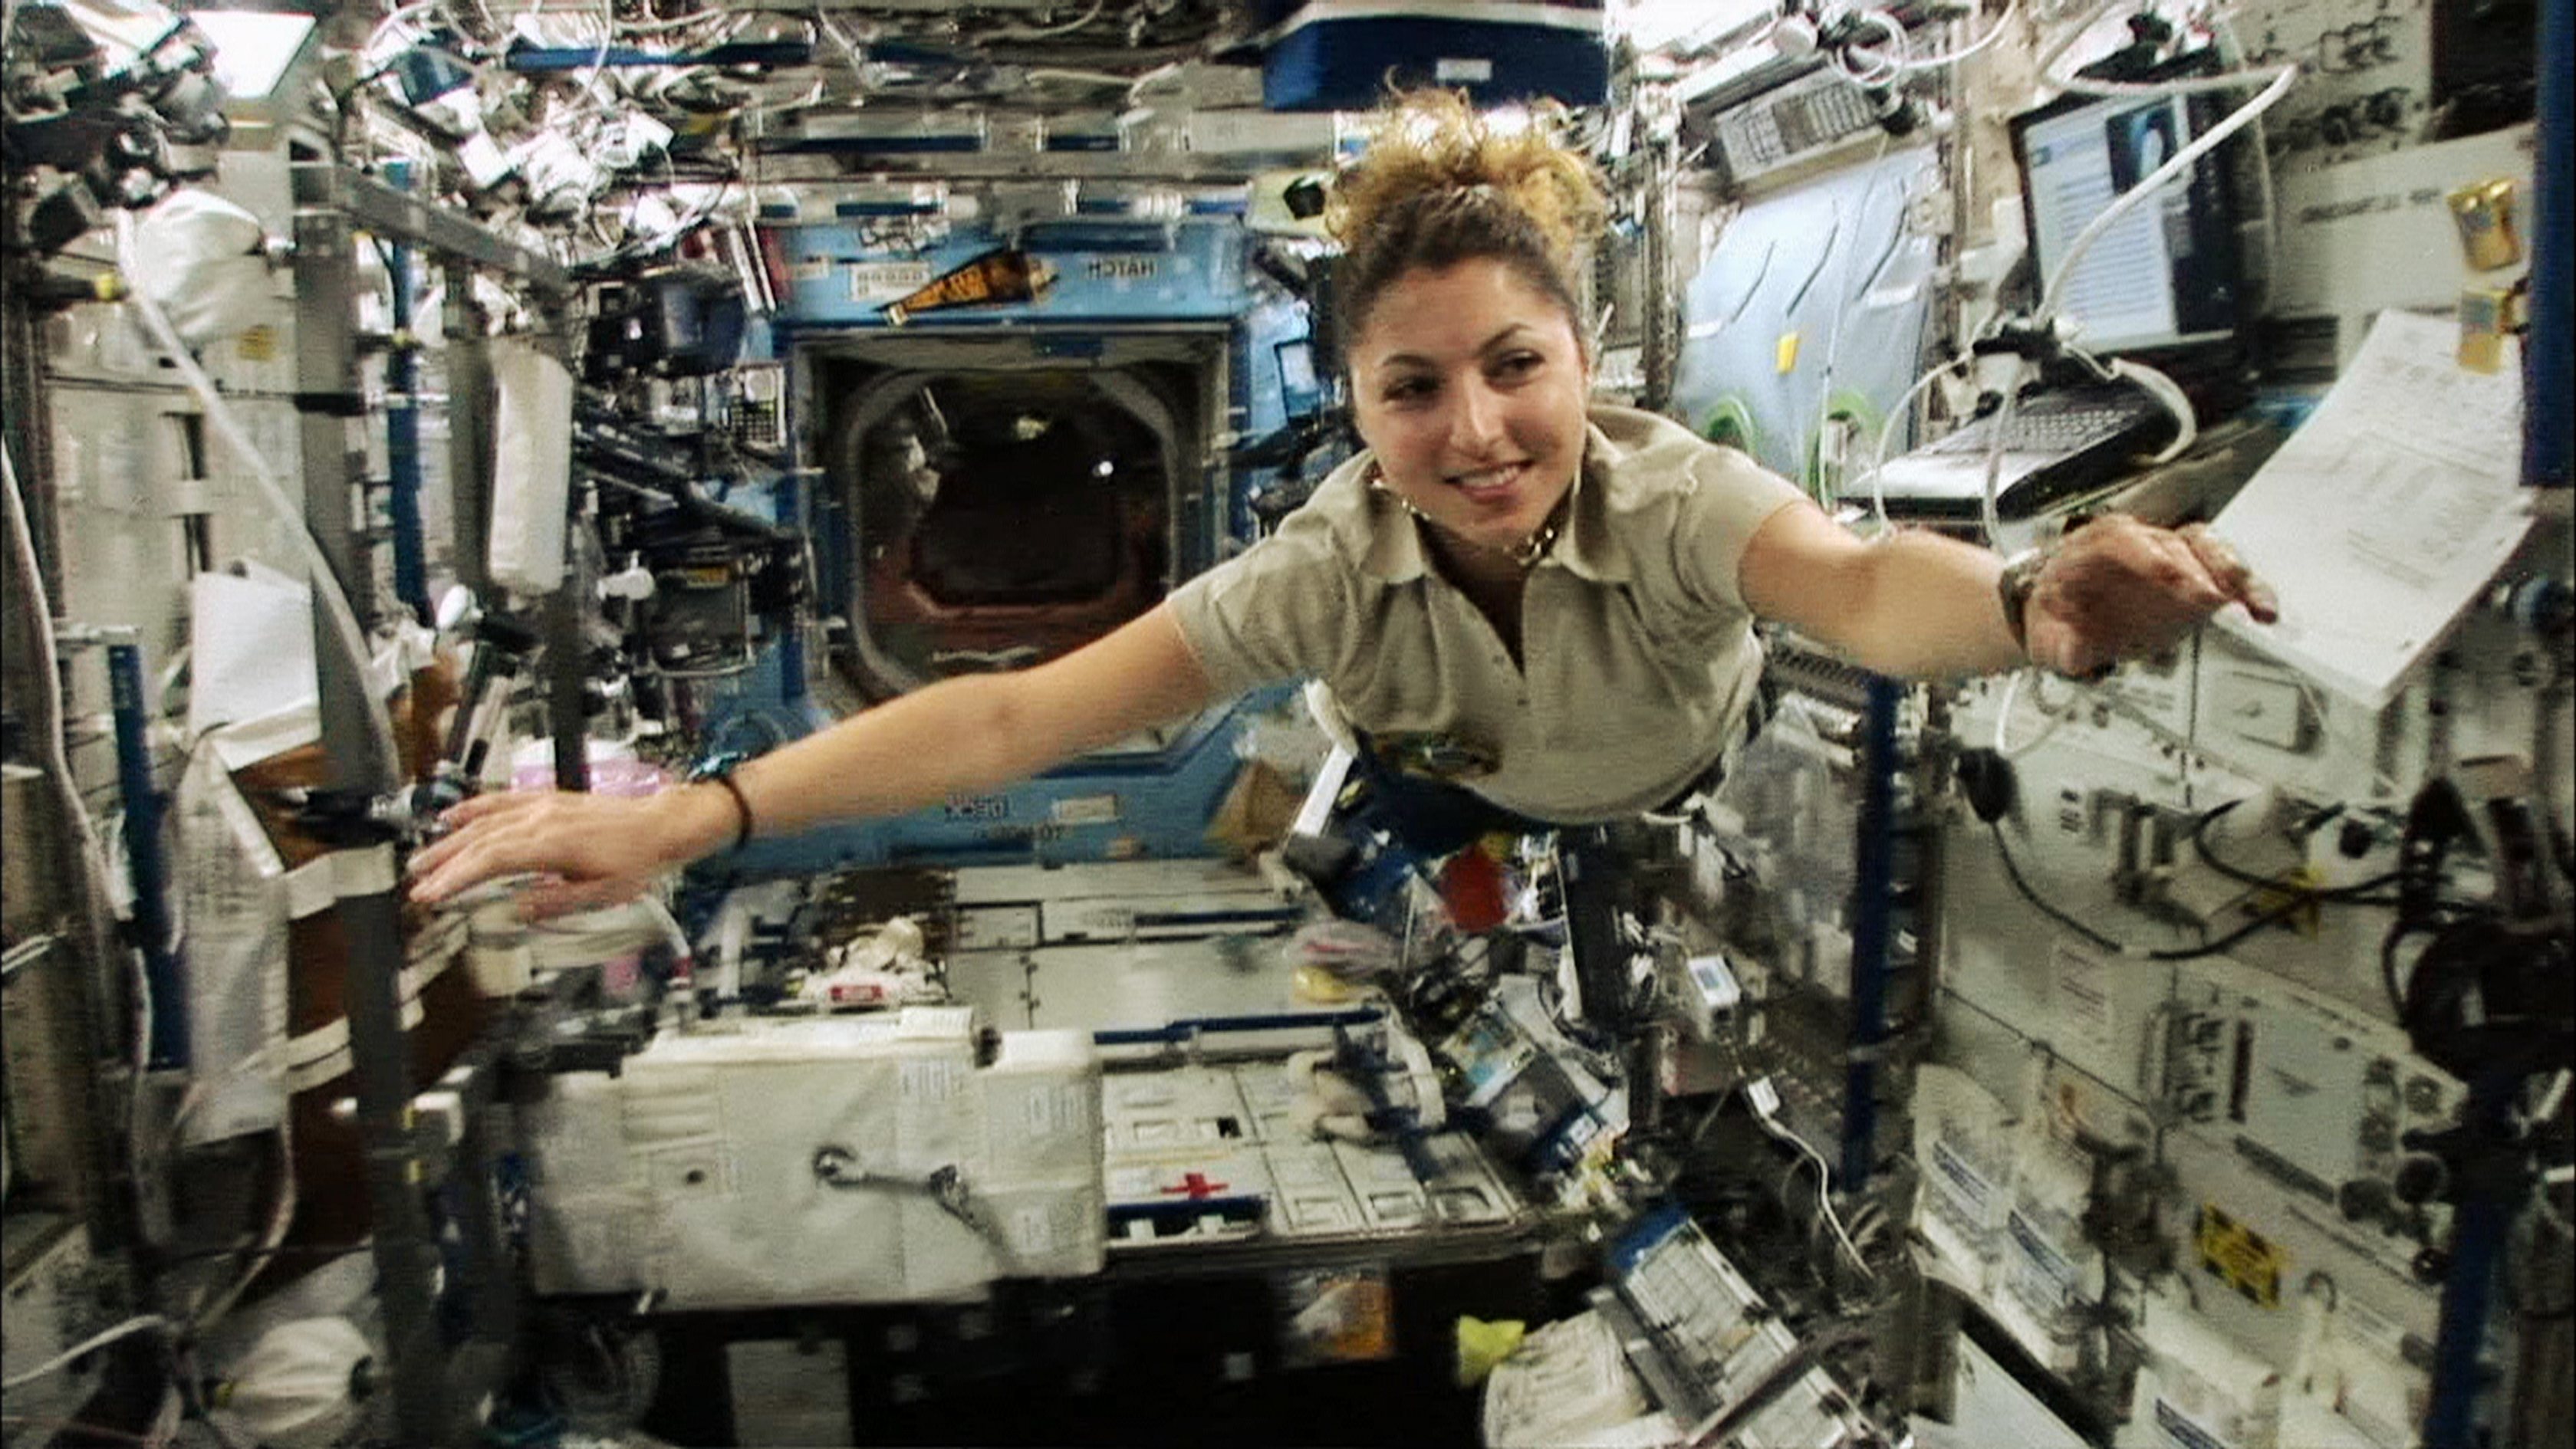 First Female Space Tourist